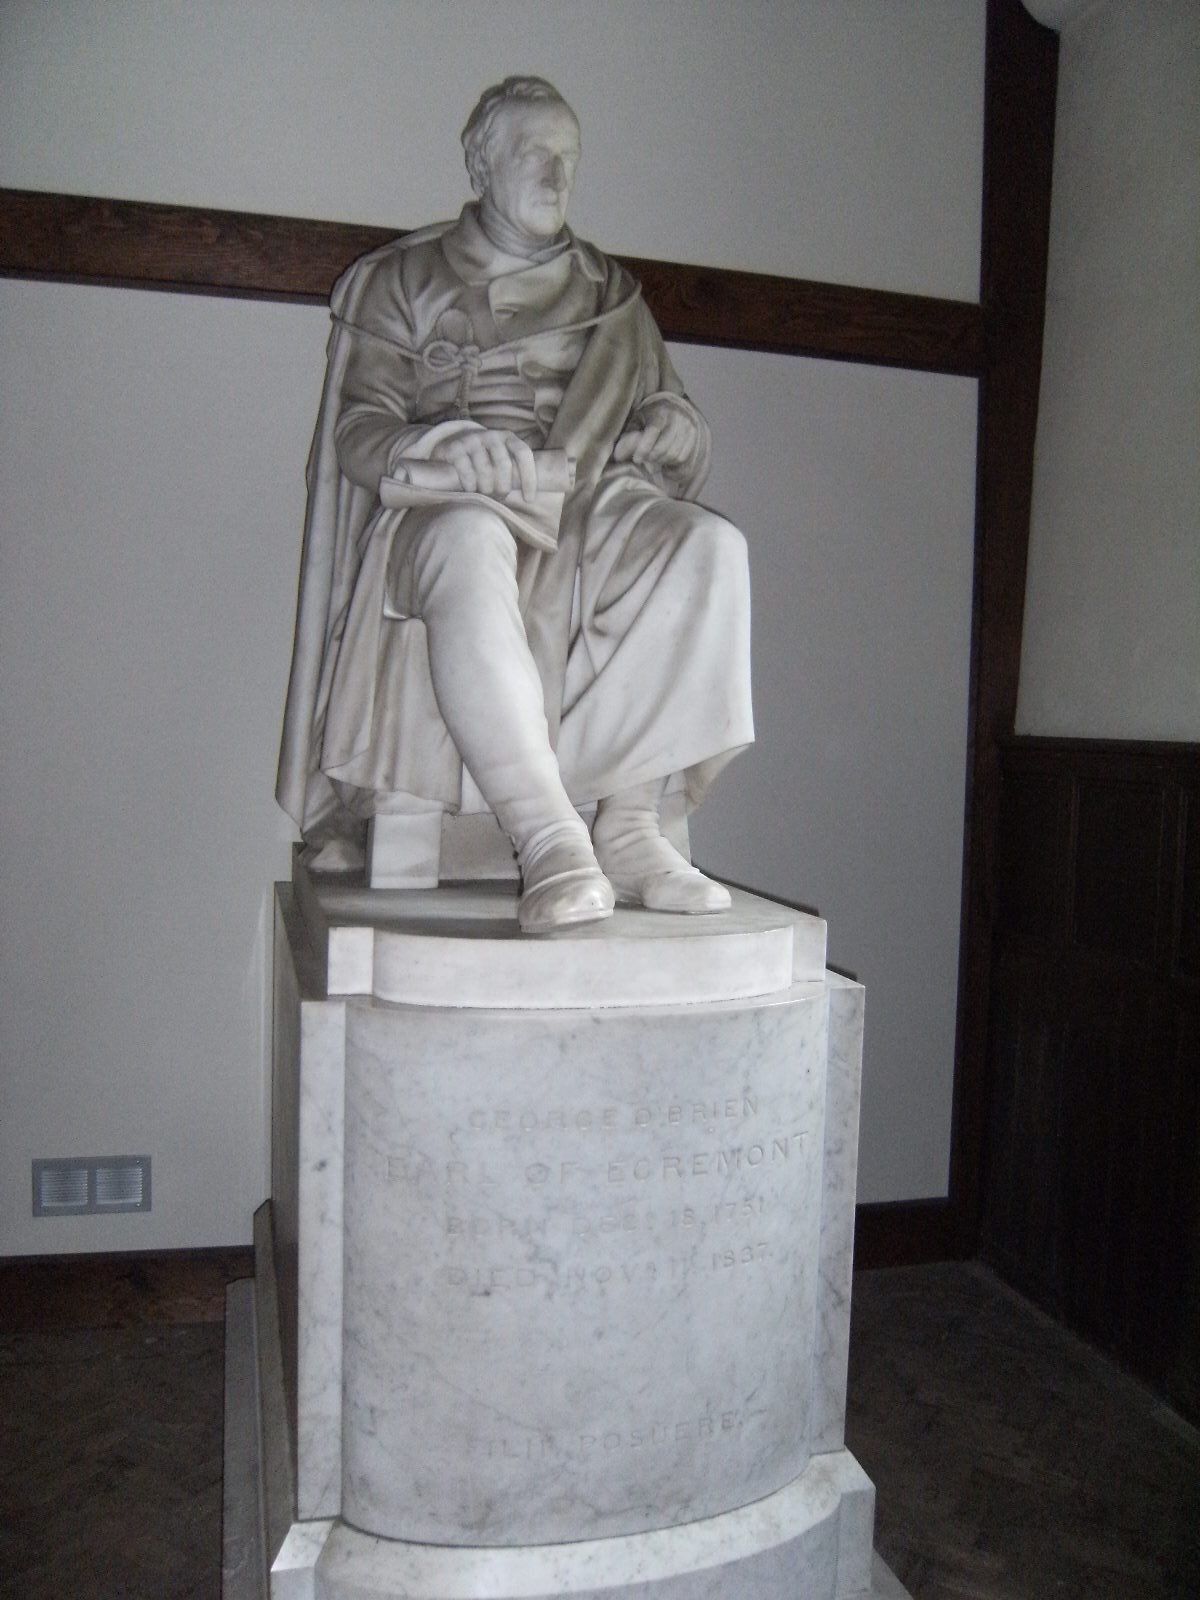 DSCF8380 Statue of the Earl of Egremont, Petworth Church